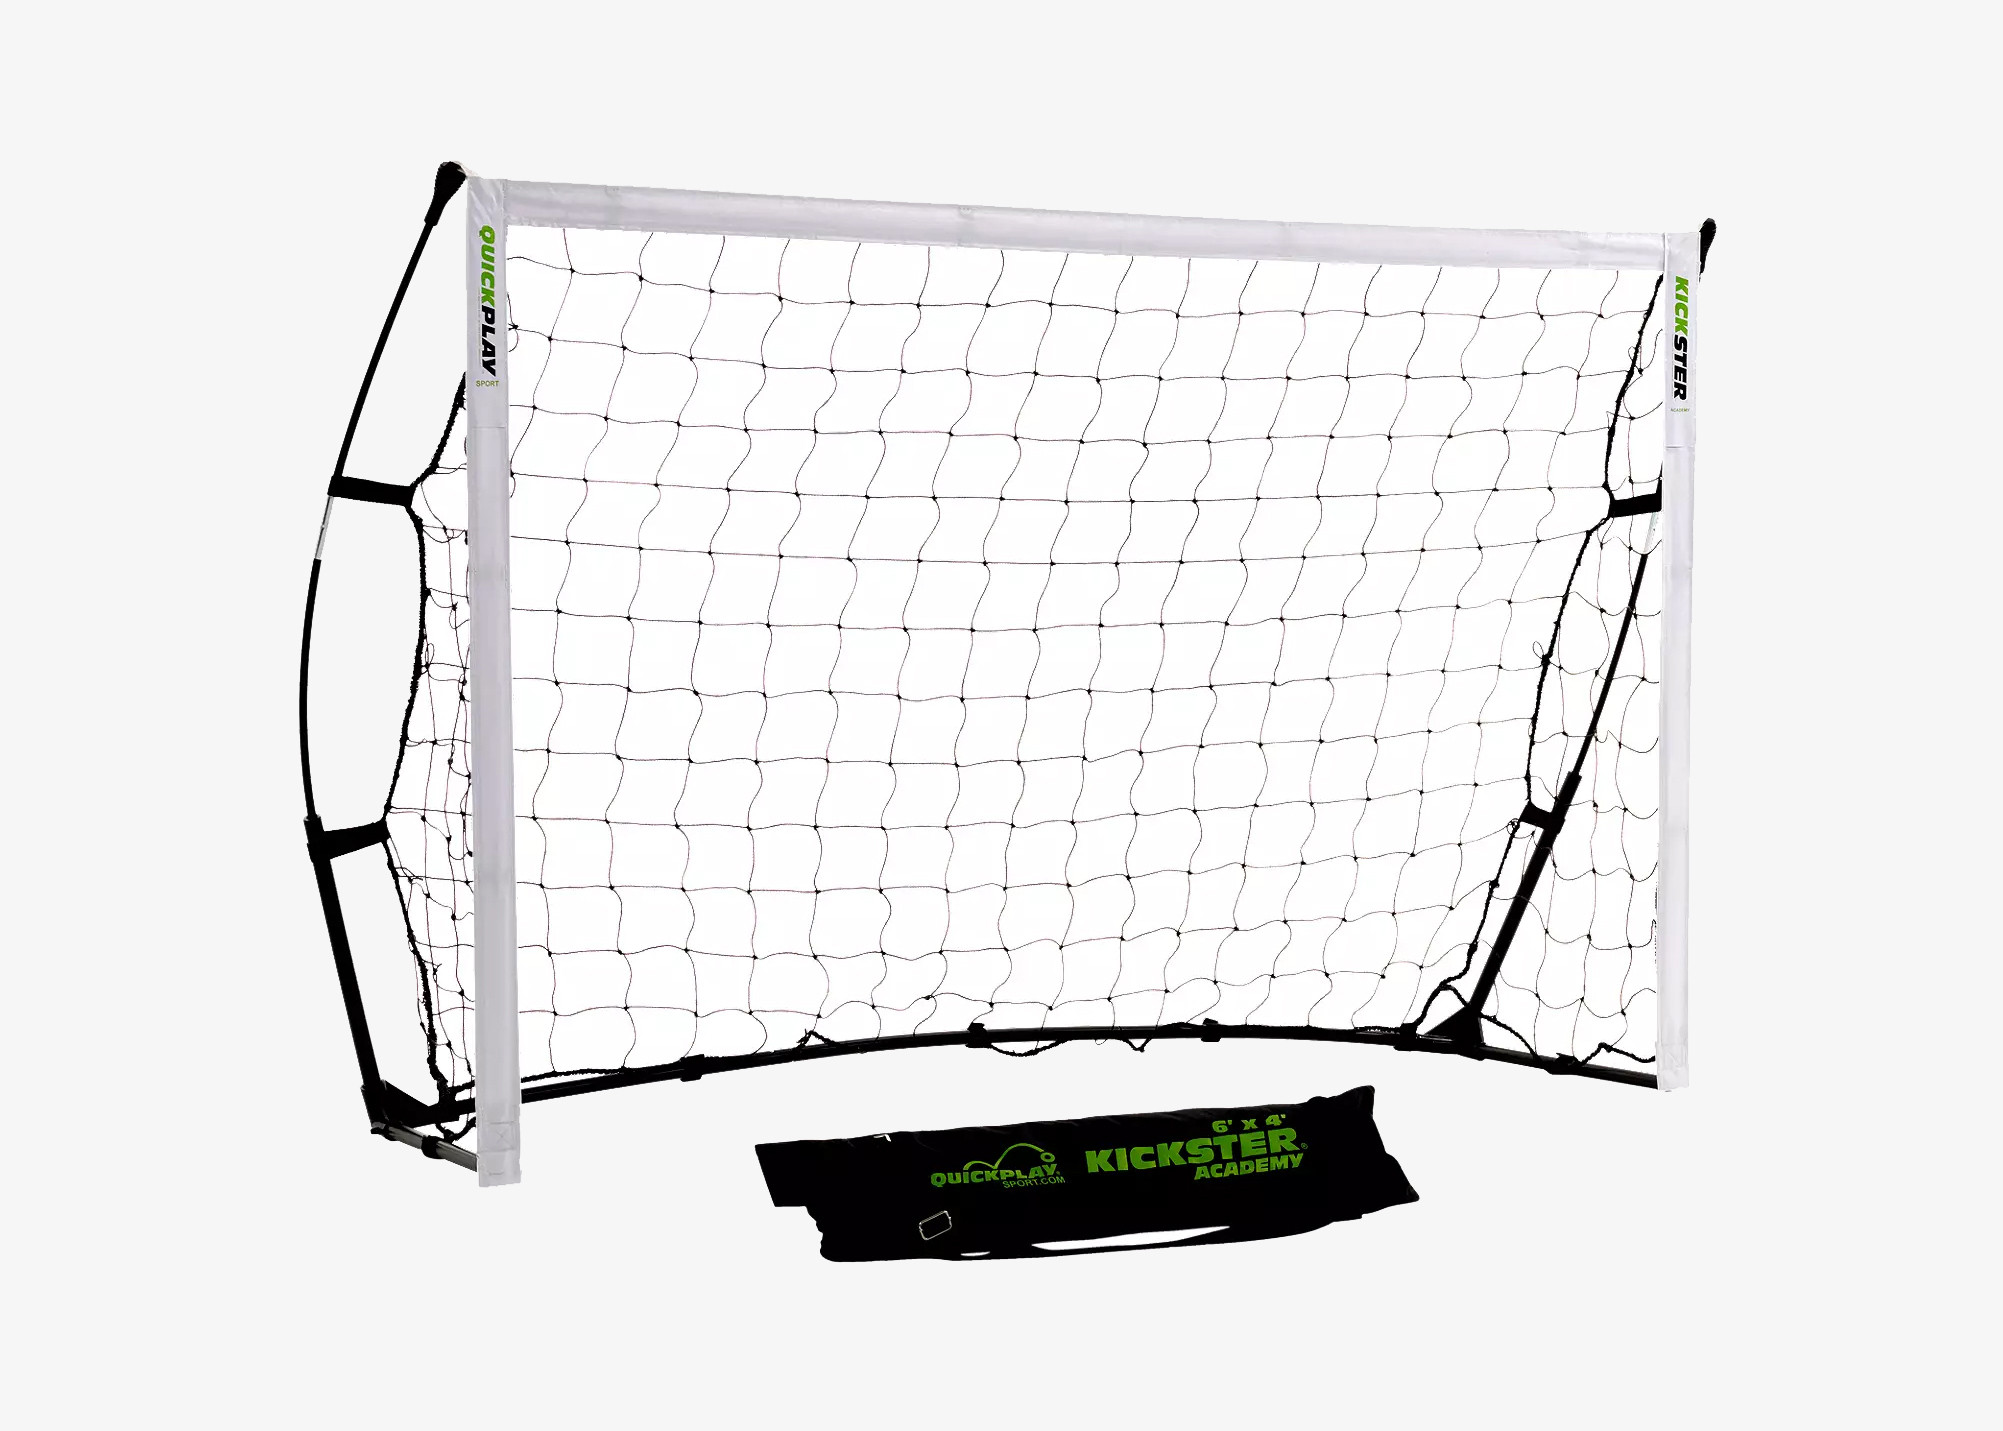 QuickPlay Kickster Academy Ultra-Portable 6' x 4' Football Goal Black